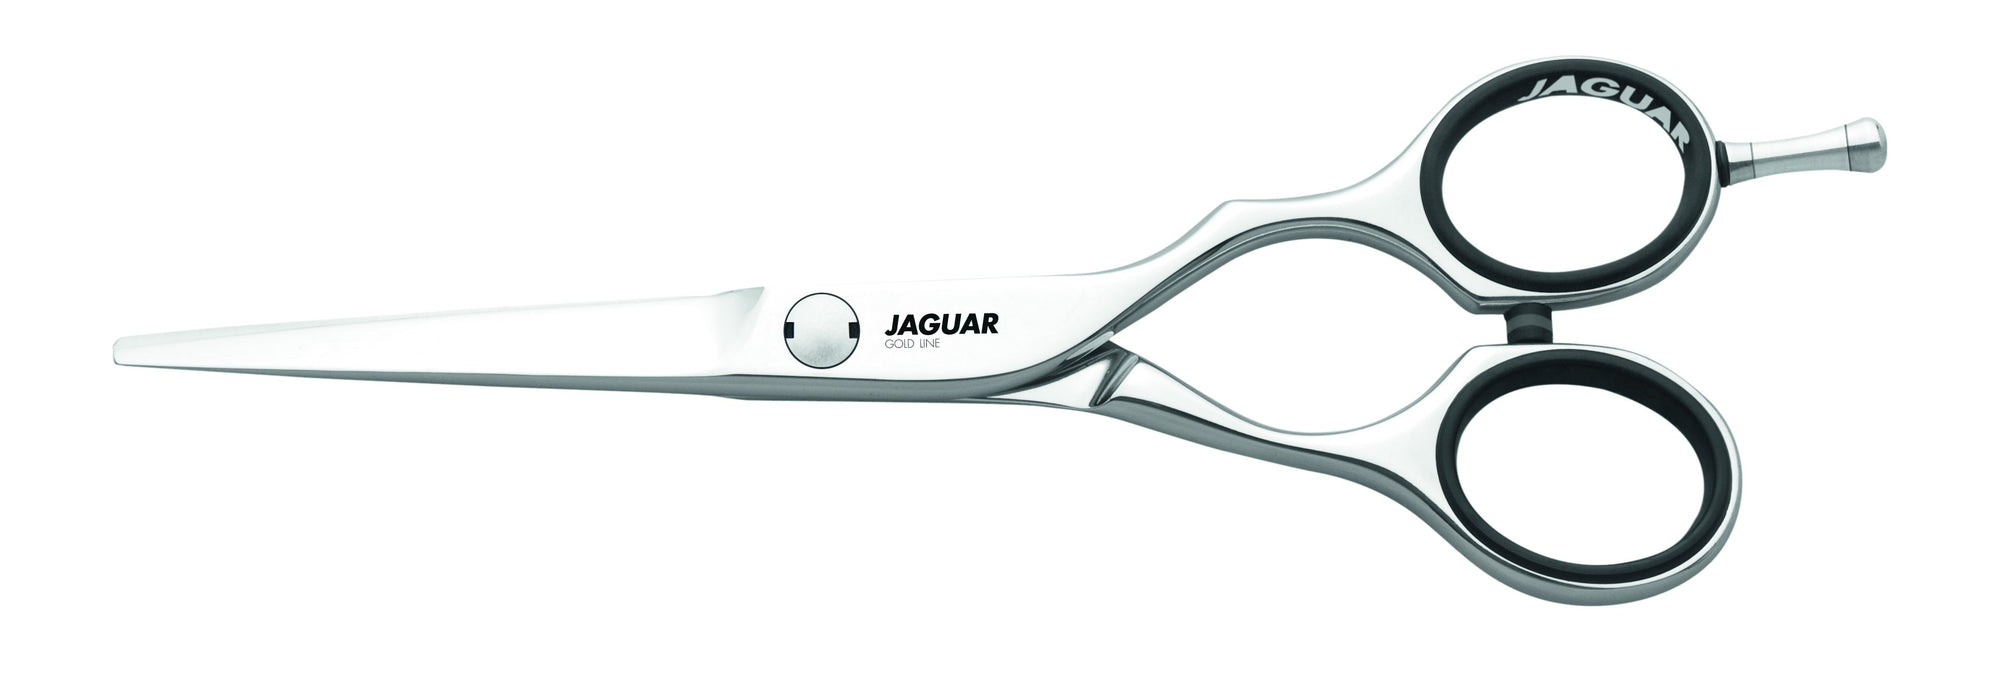 Jaguar Diamond (4396667895891)